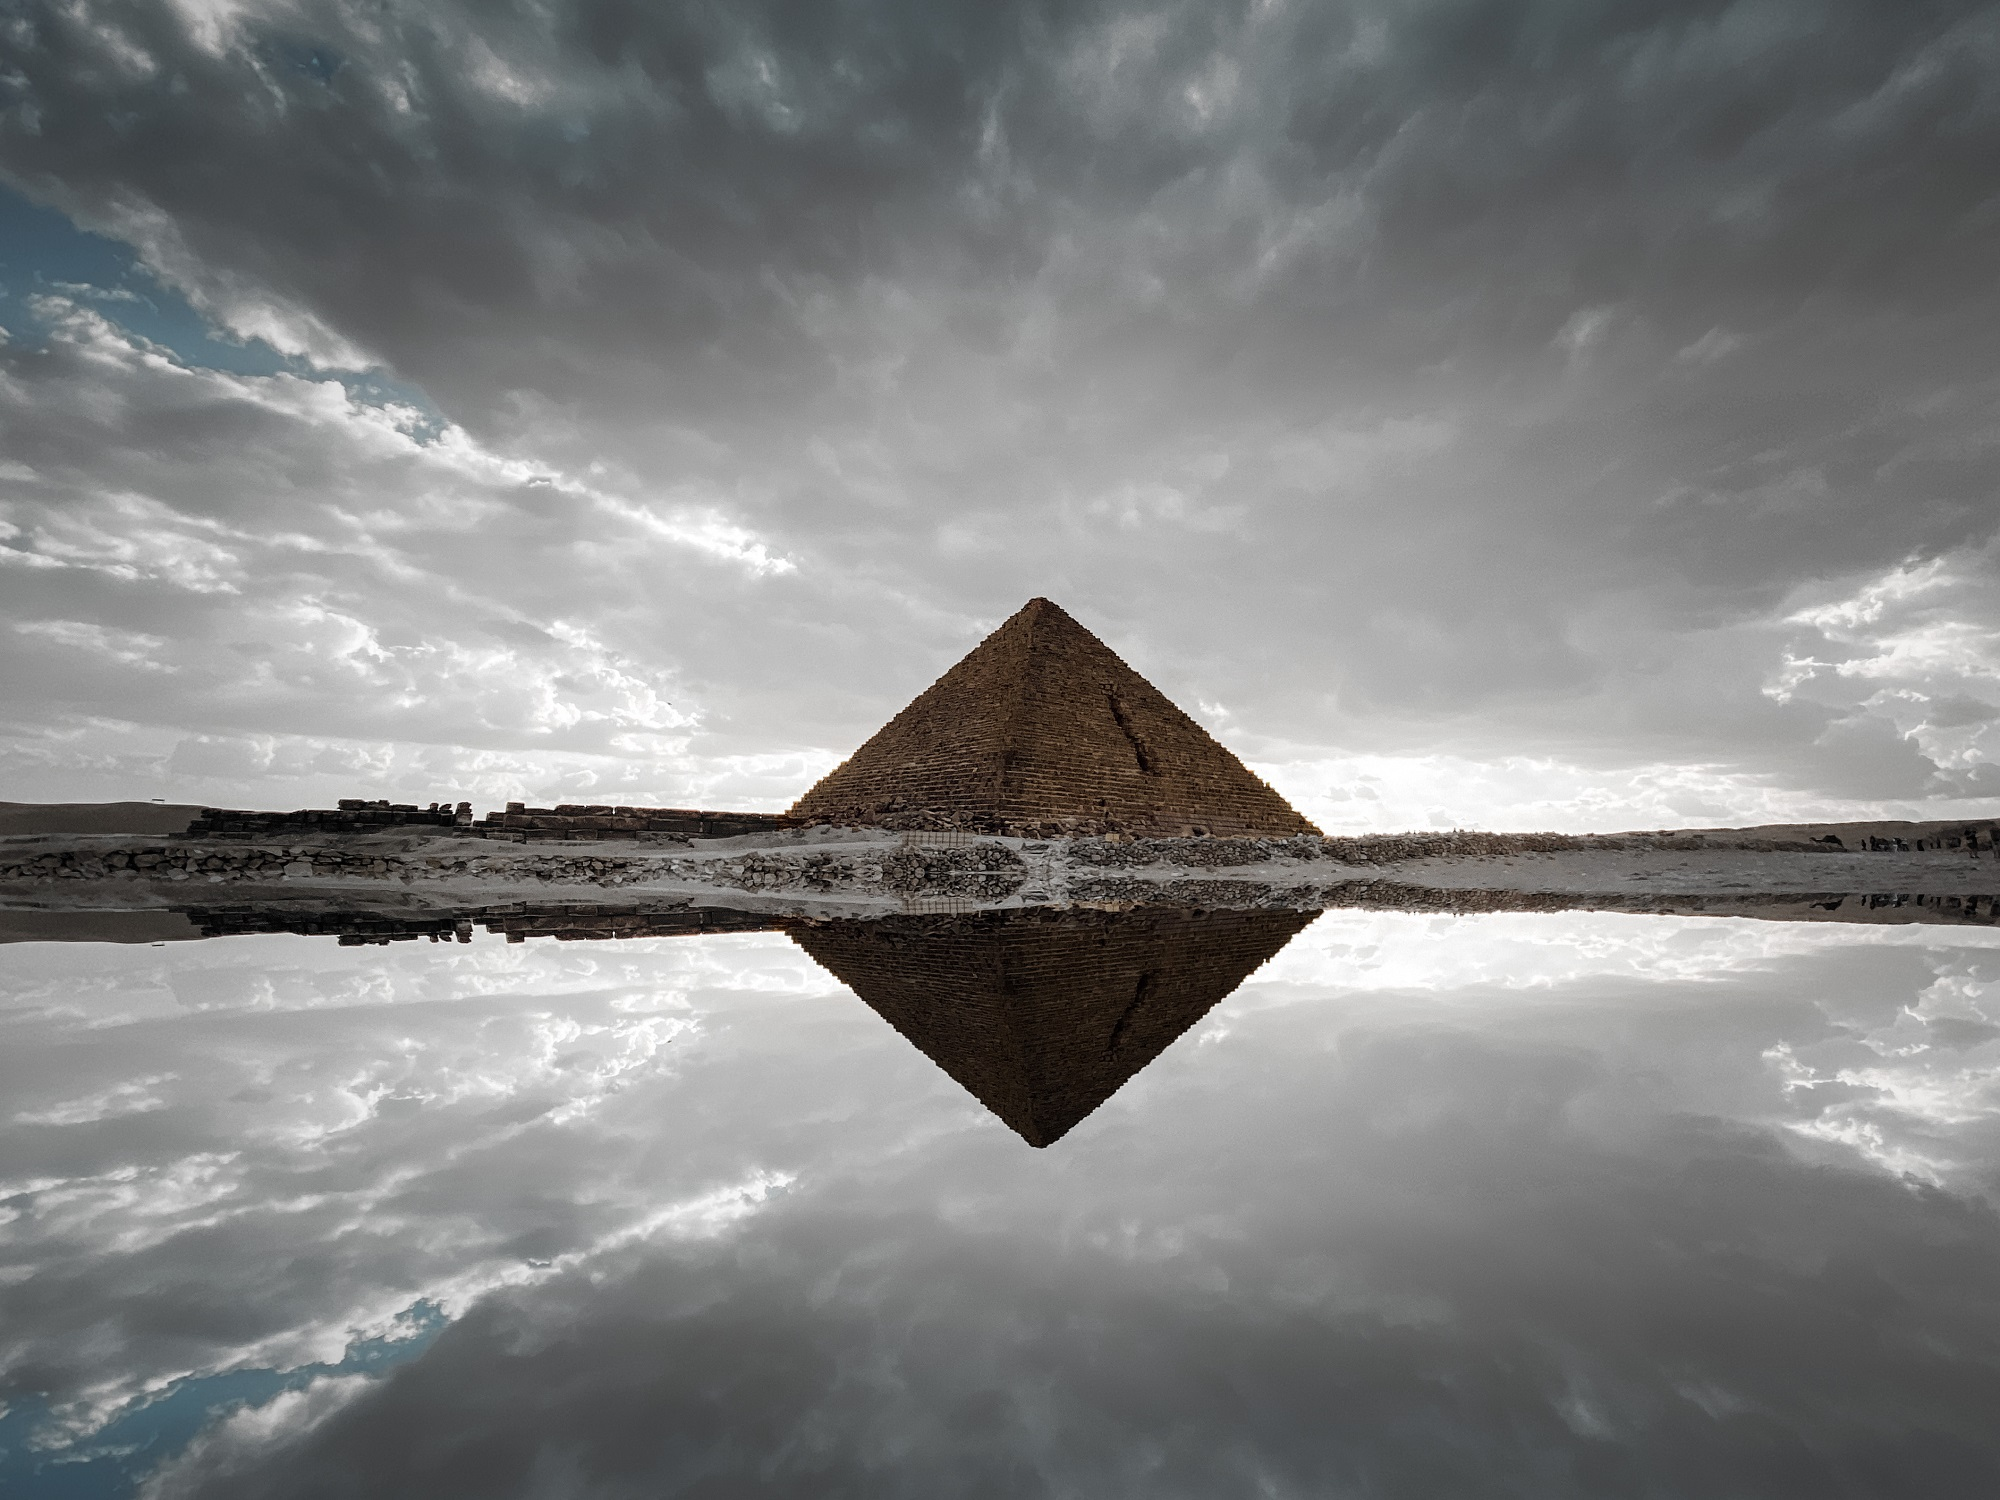 An image of Menkaure's pyramid at Giza. Shutterstock.